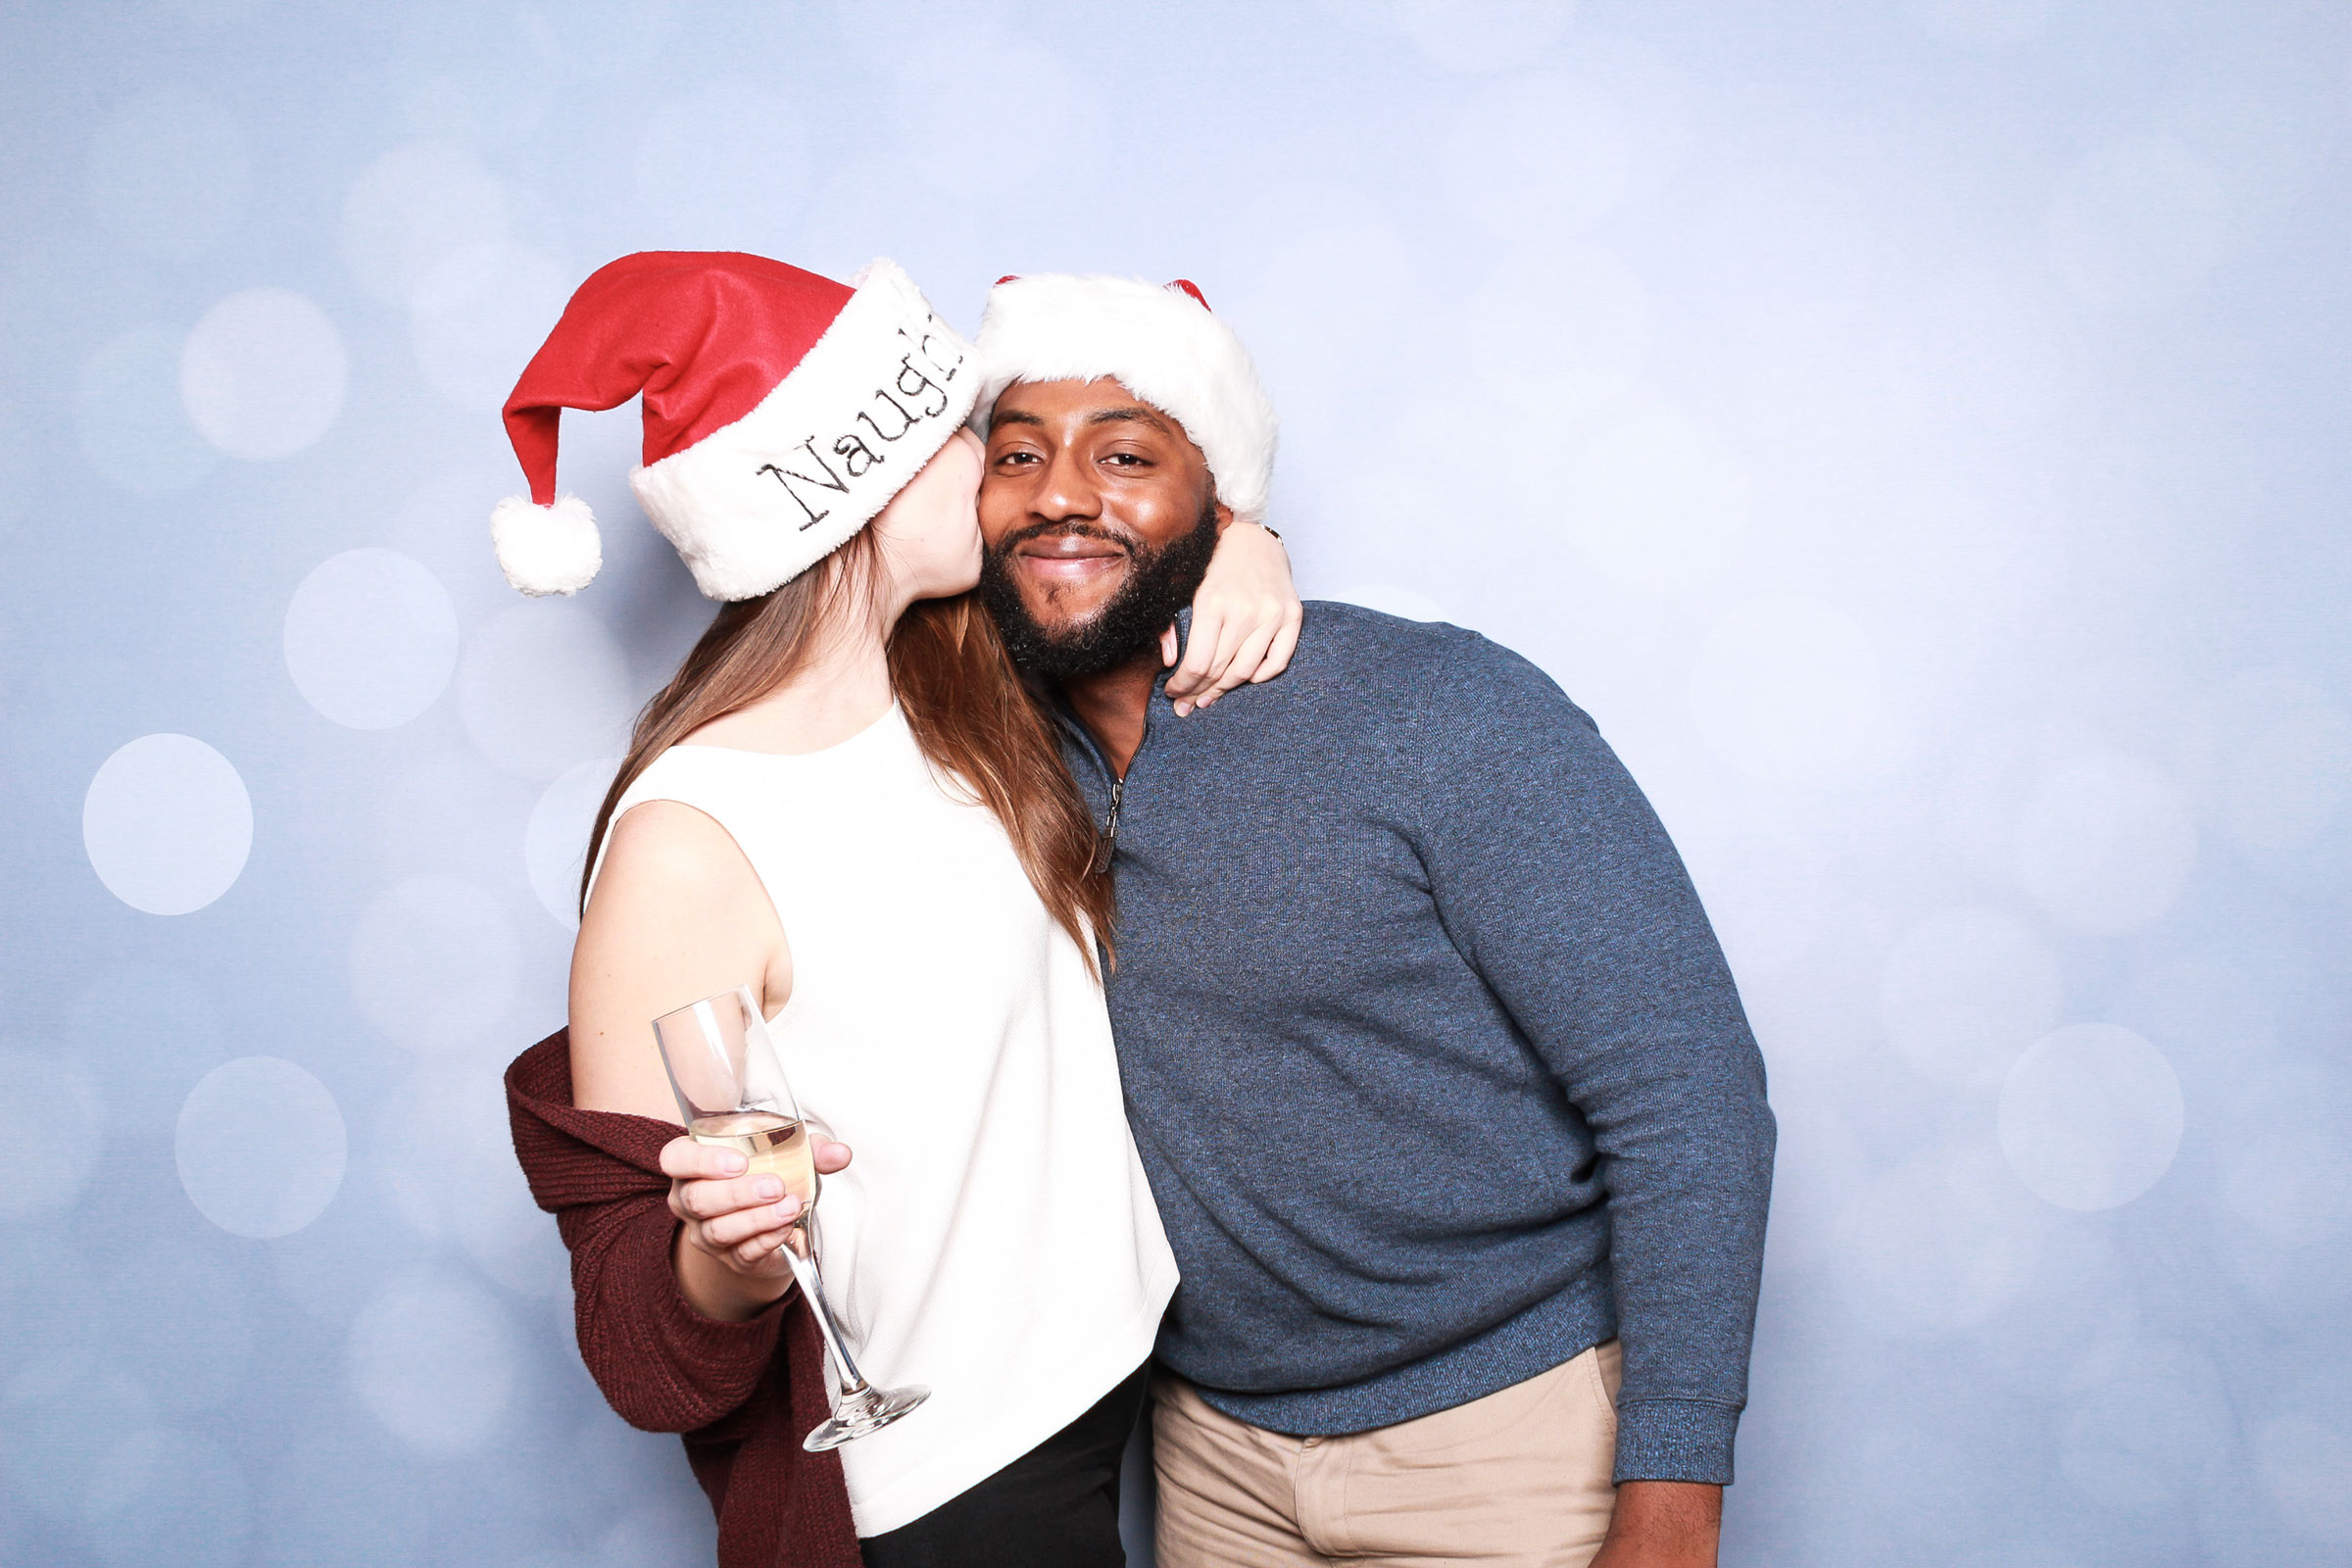 Couple photo booth pose